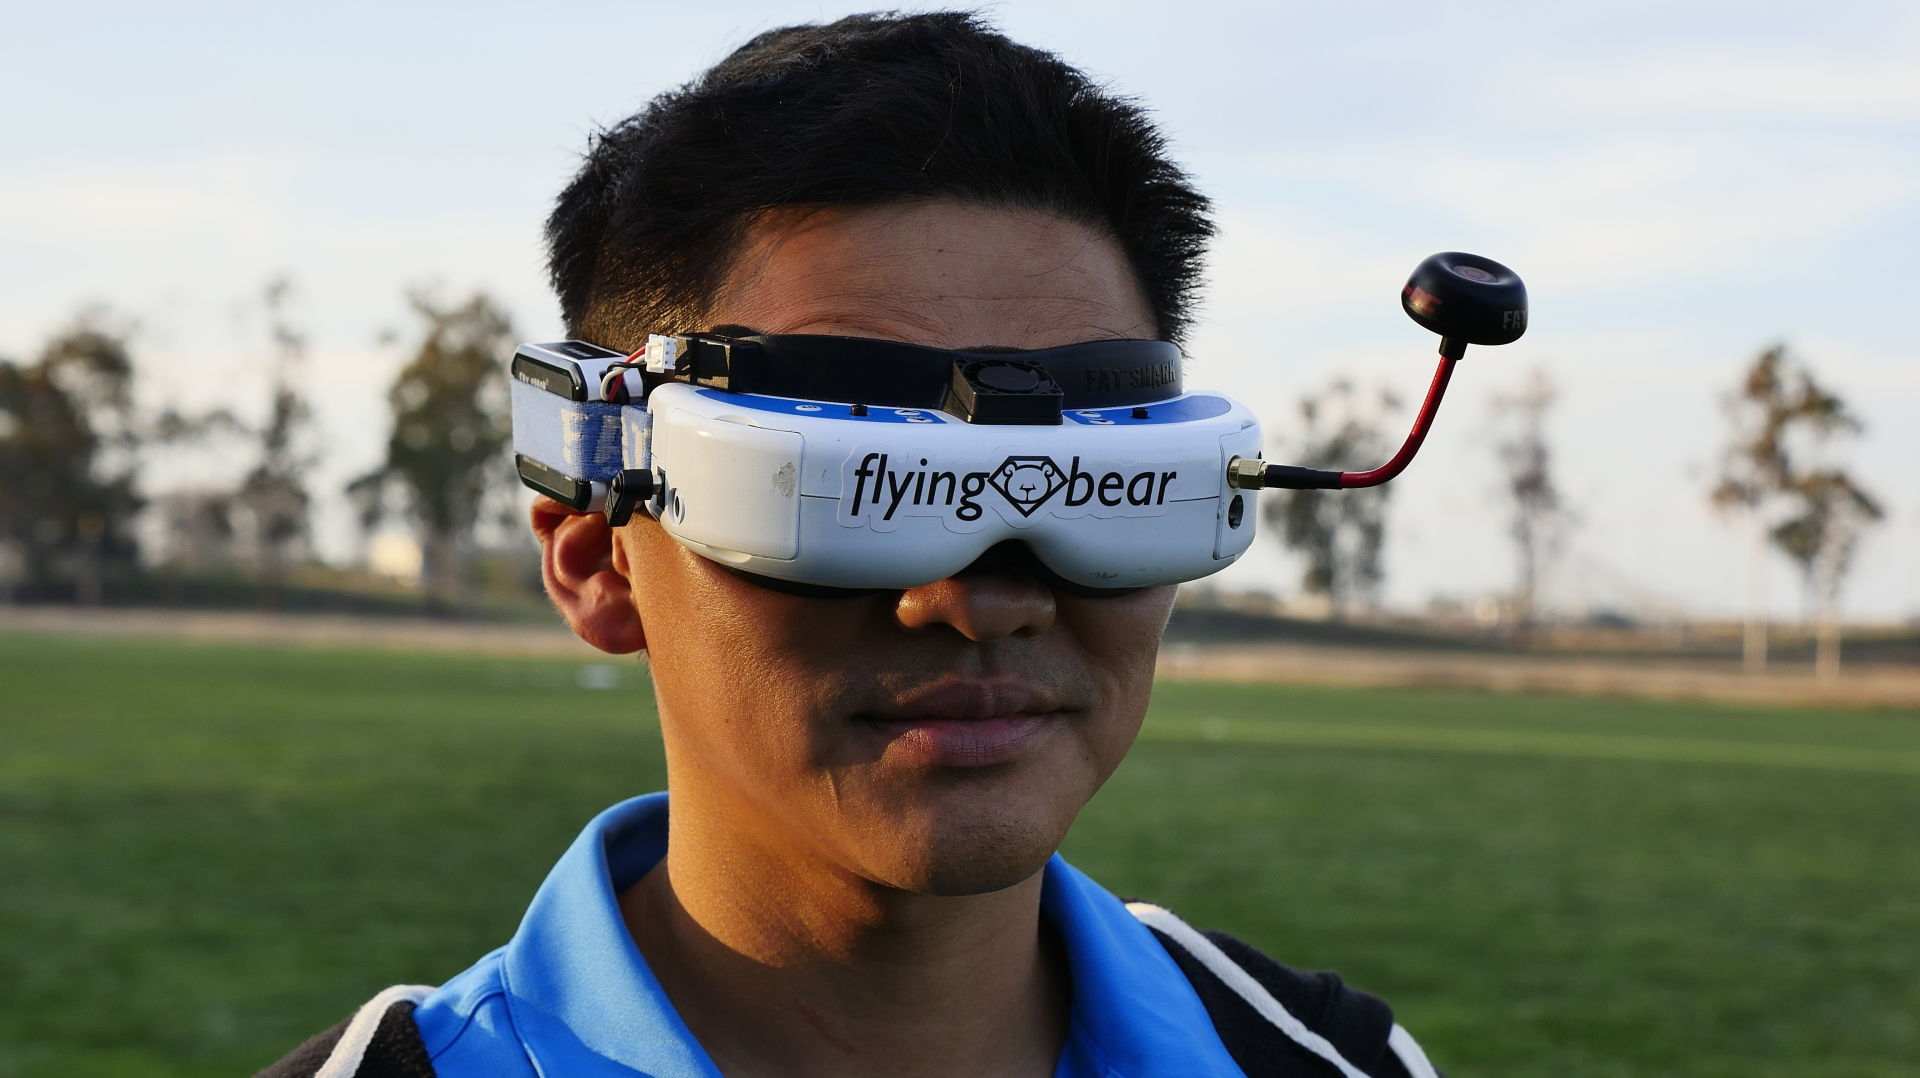 Racing Drones Built For Speed Not Selfies Take Off With